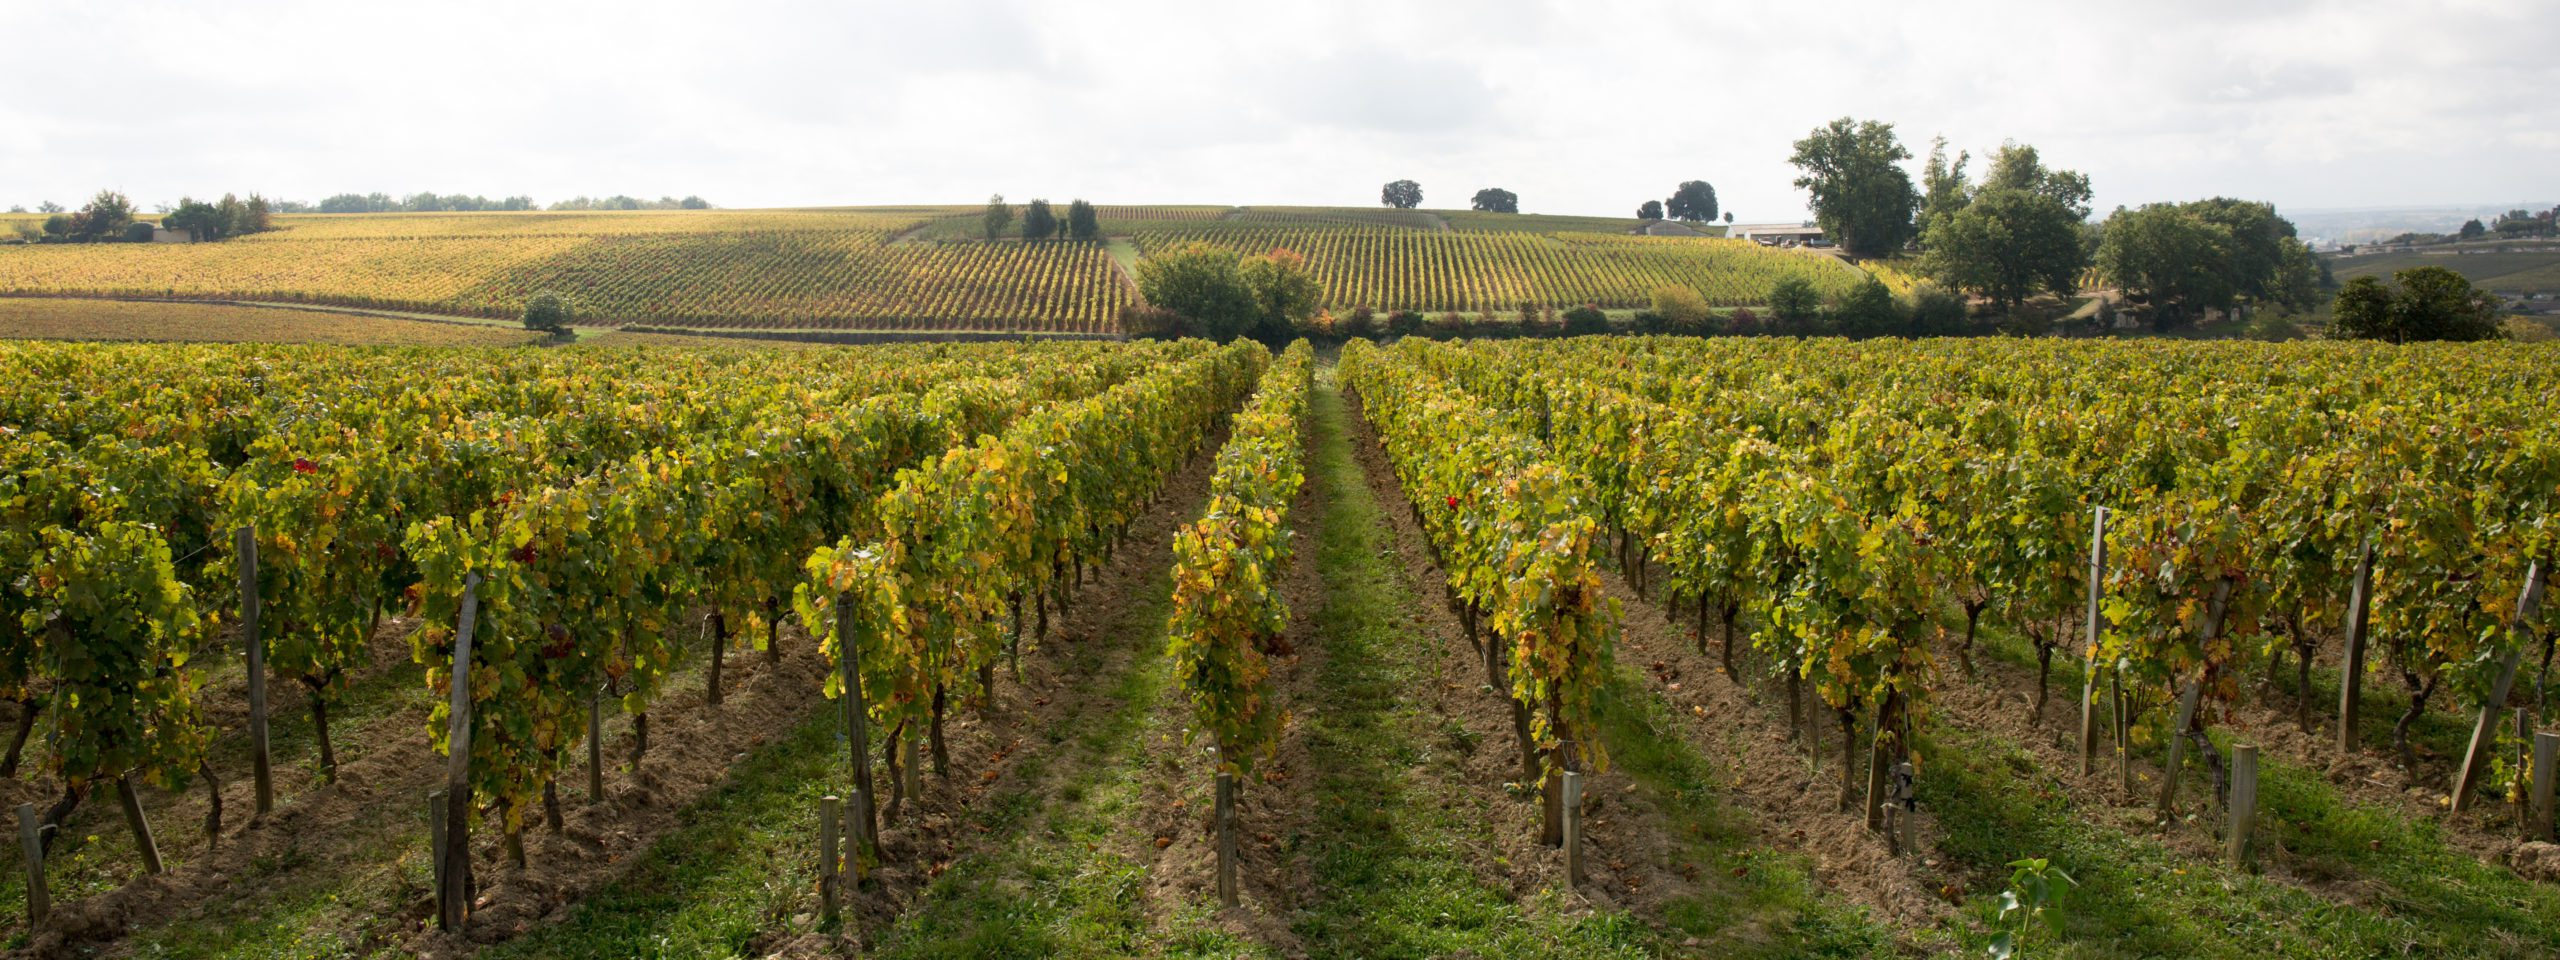 Blog - wineries rows of grape vines taken on a bright and sunny day